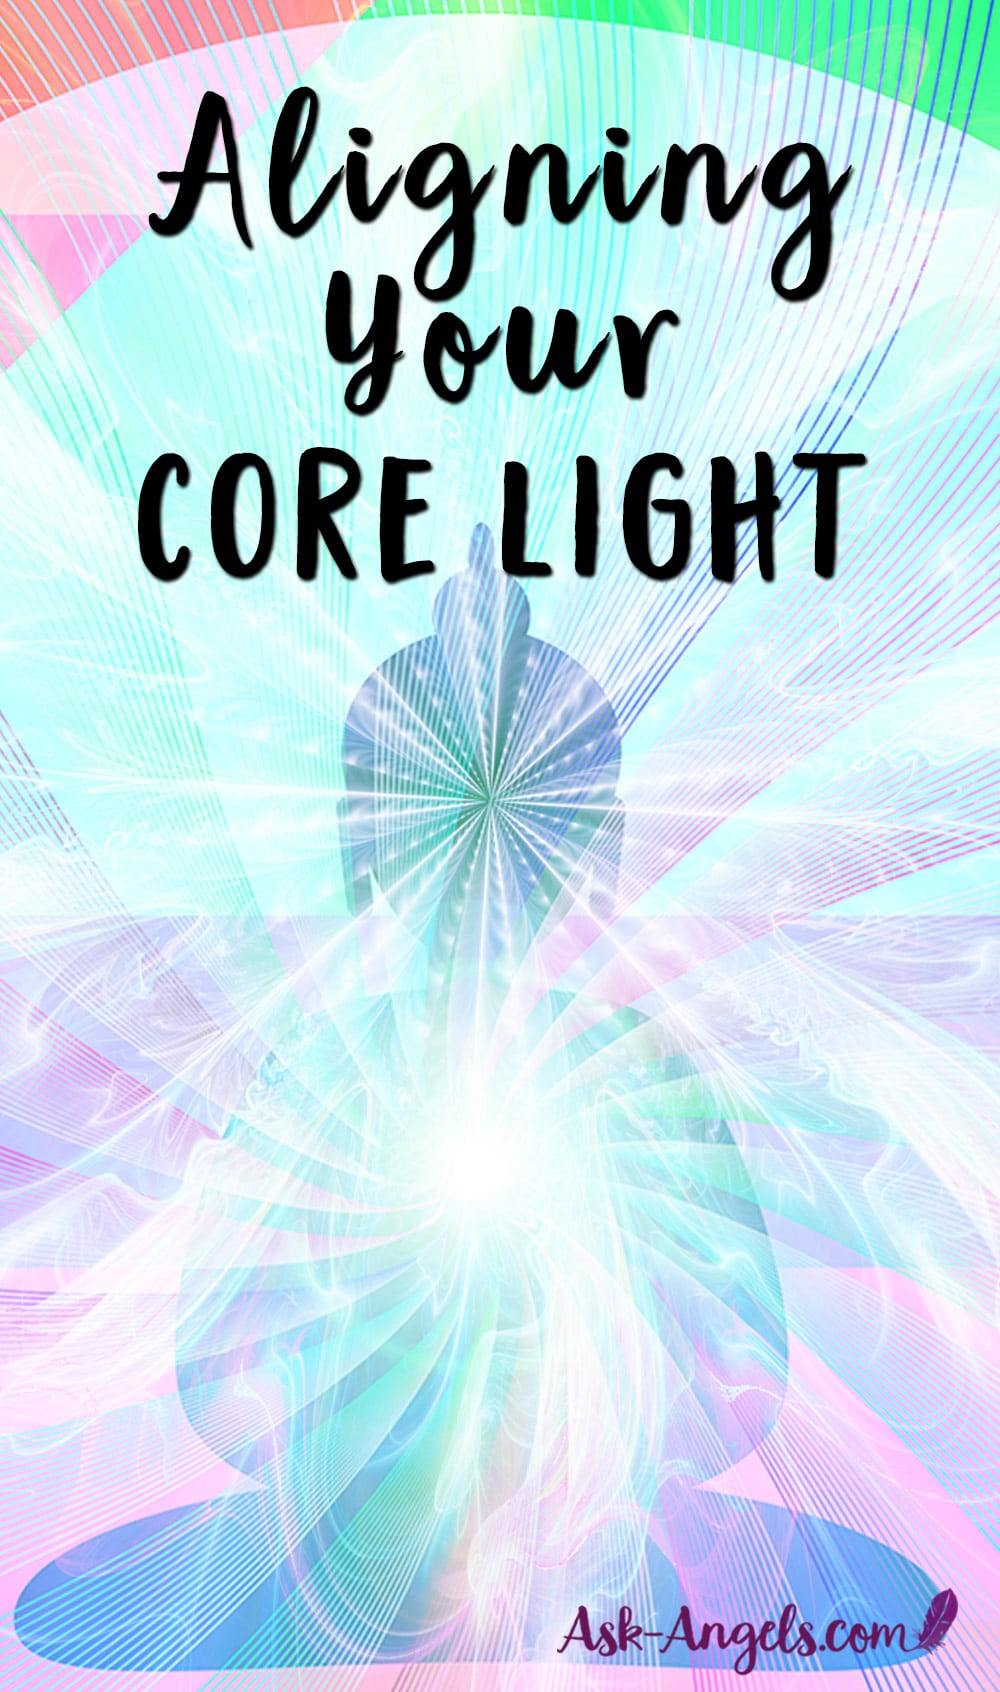 Aligning Your Core Light